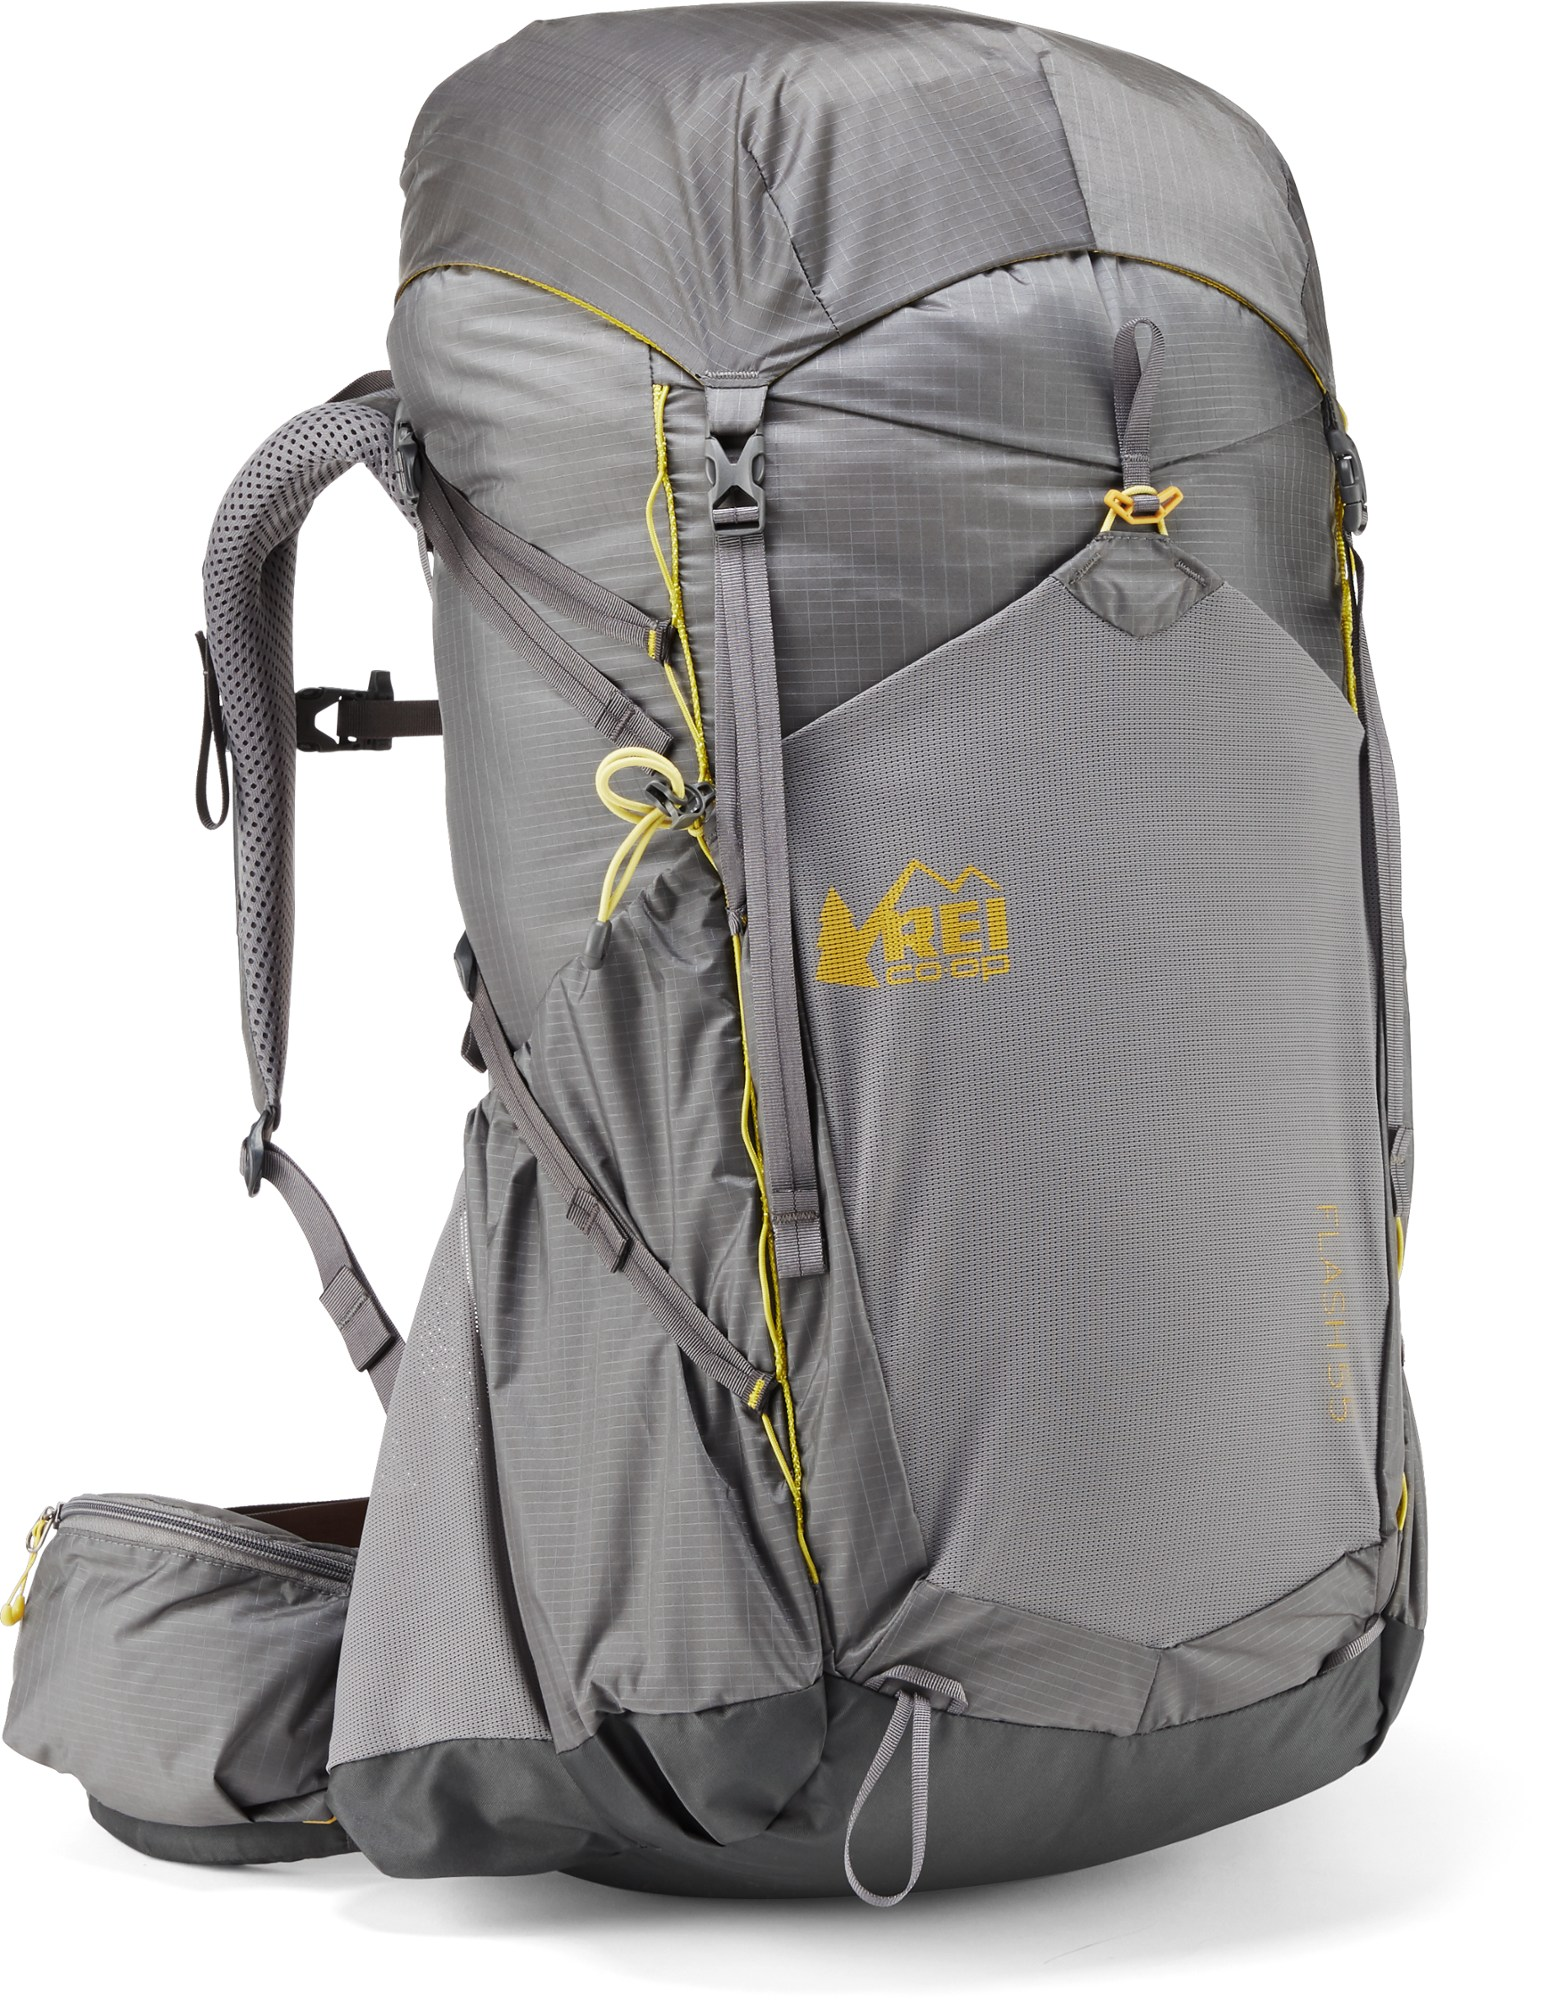 REI Co-op Flash 55 Pack - Women's